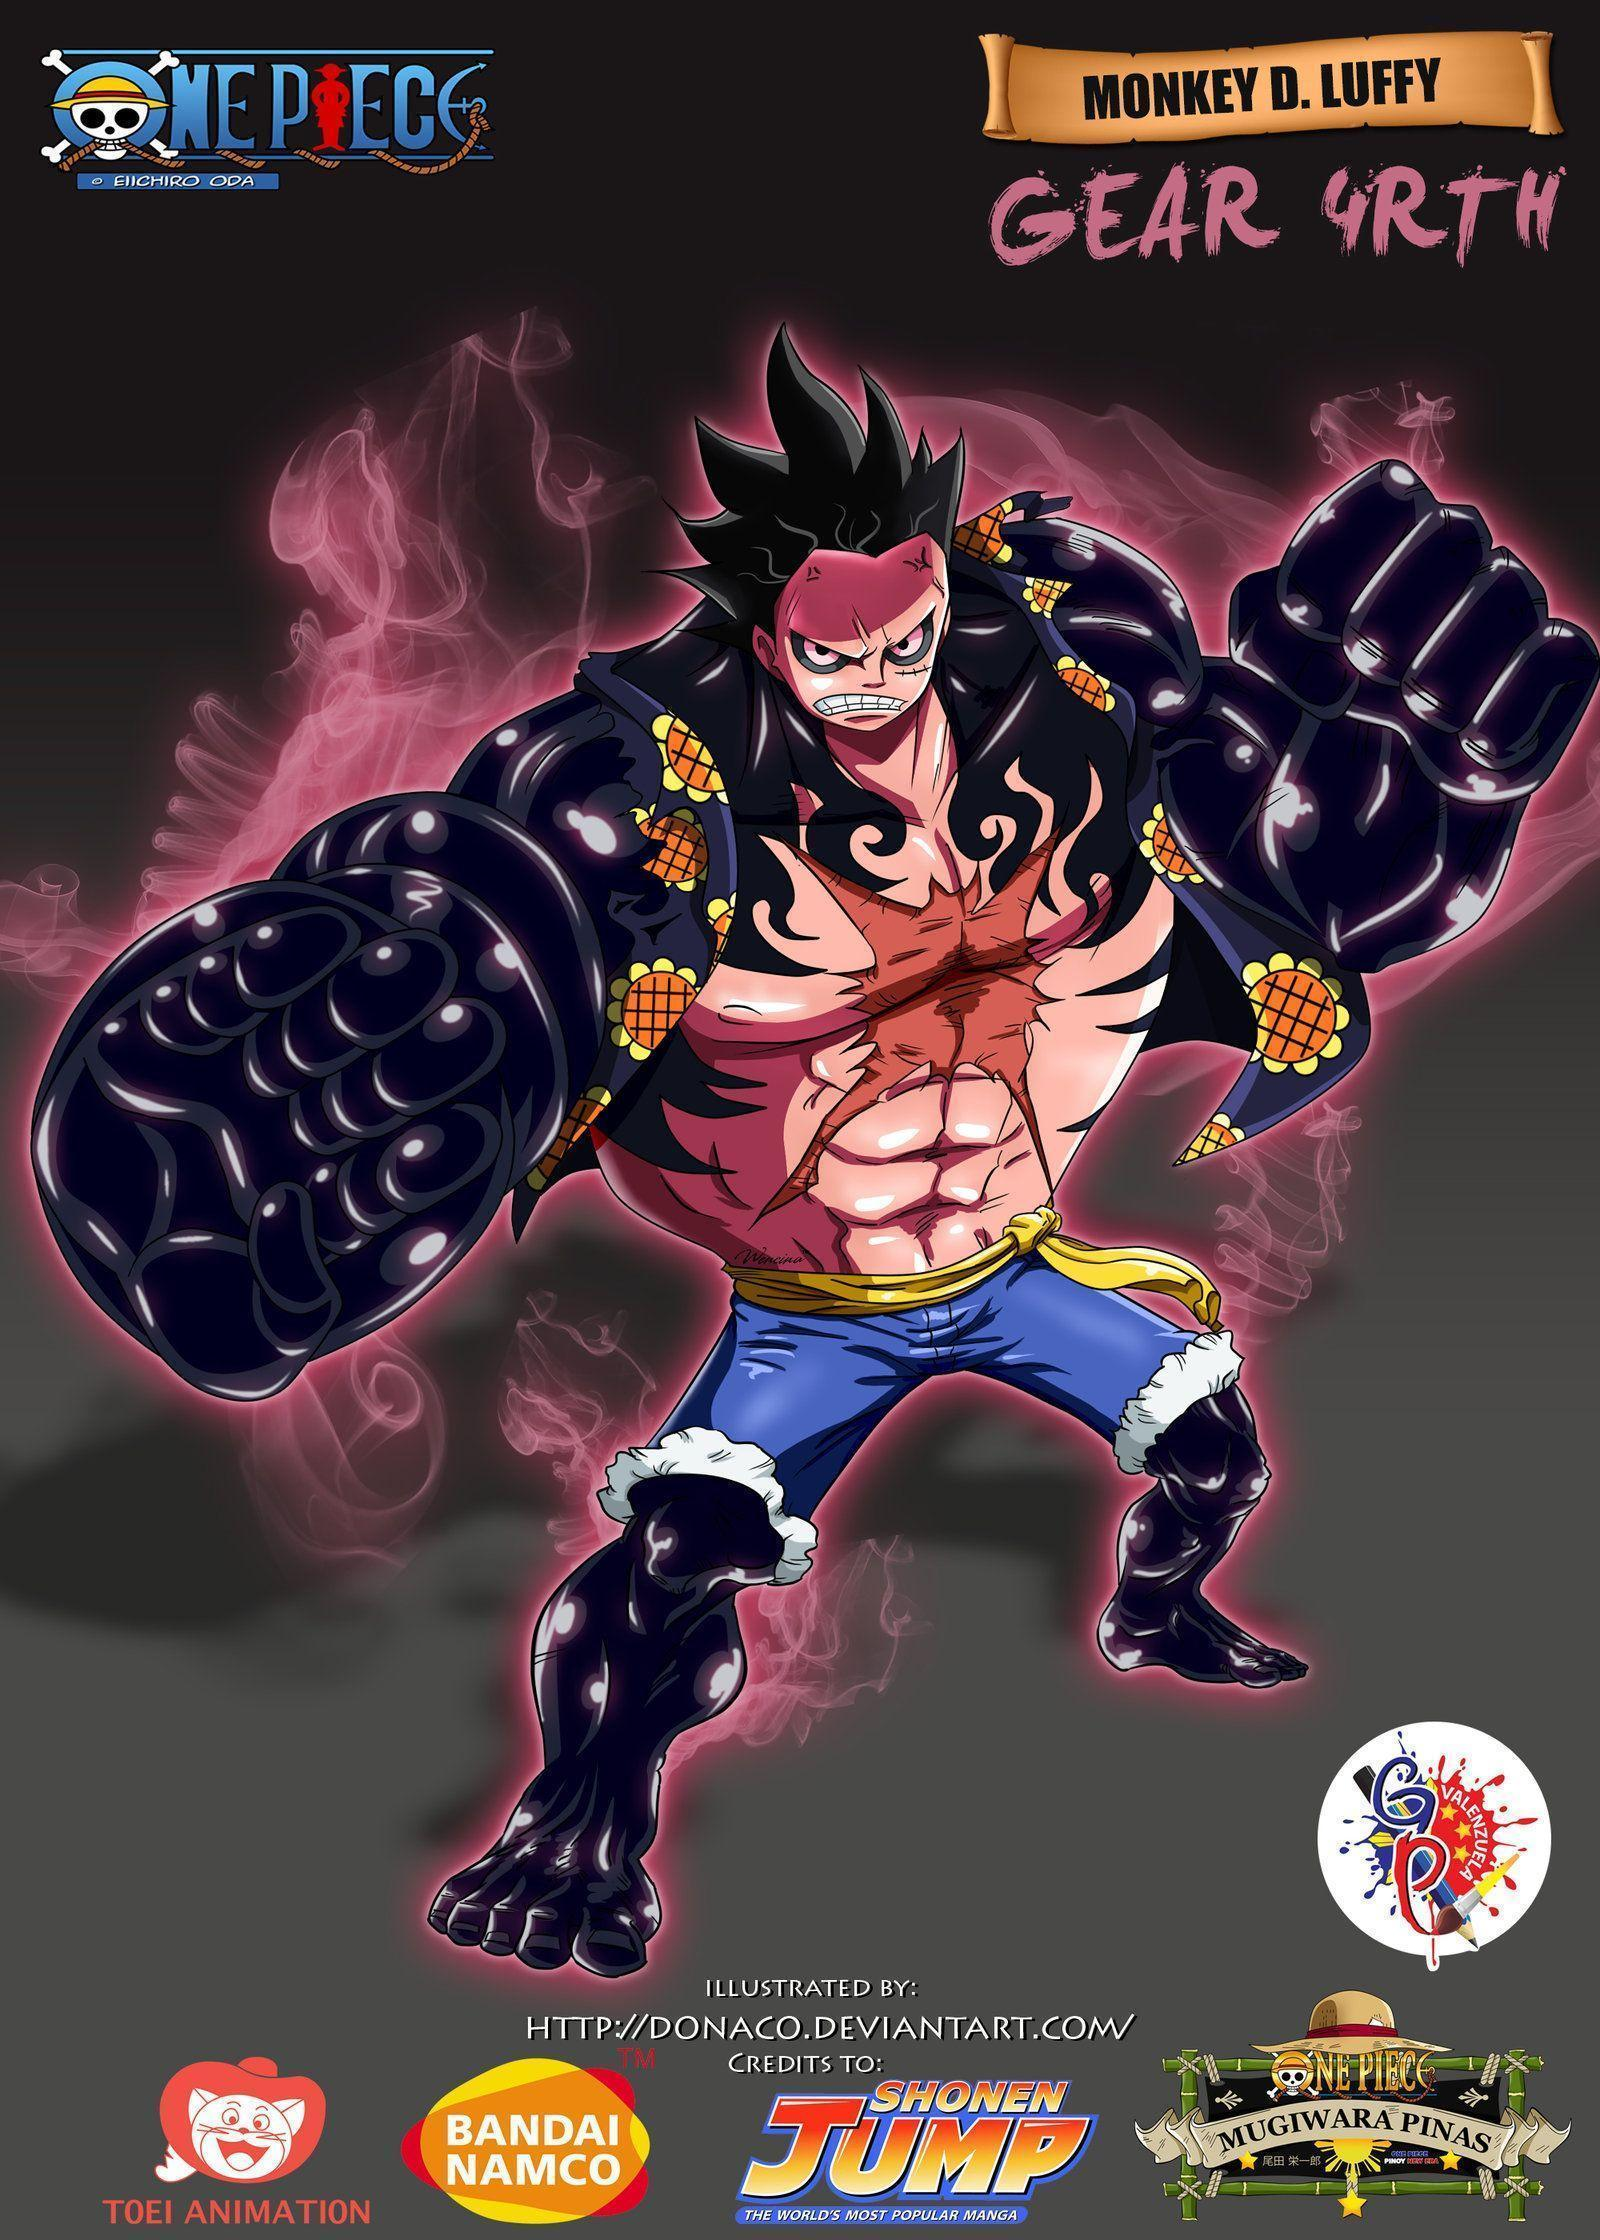 Monkey D. Luffy Gear 4rth by donaco.deviantart on @DeviantArt